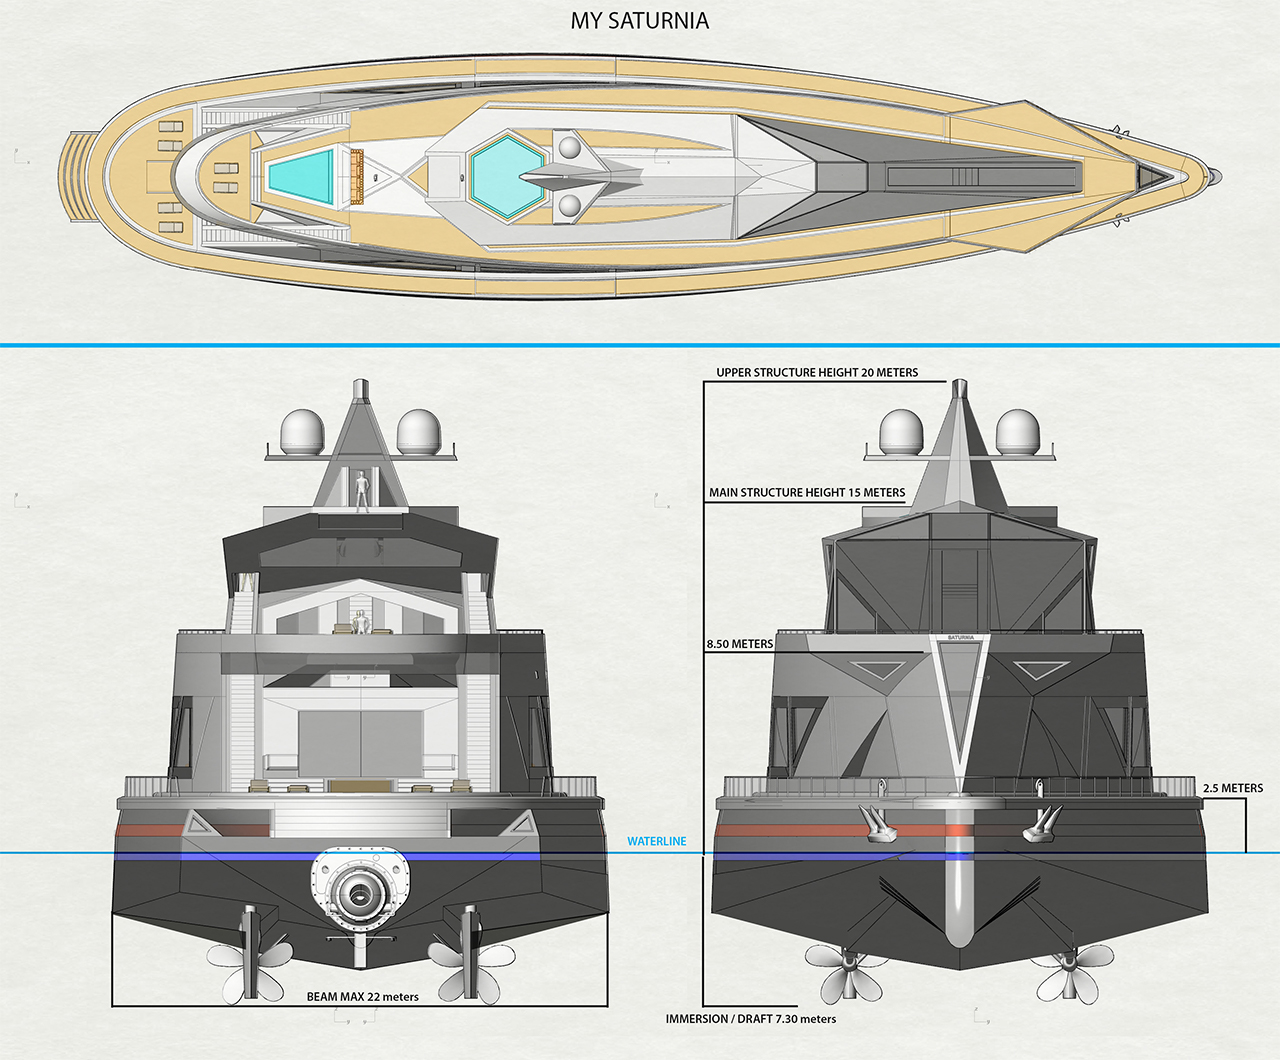 This futuristic superyacht doubles up as a floating seaport for other boats & costs $300 million!